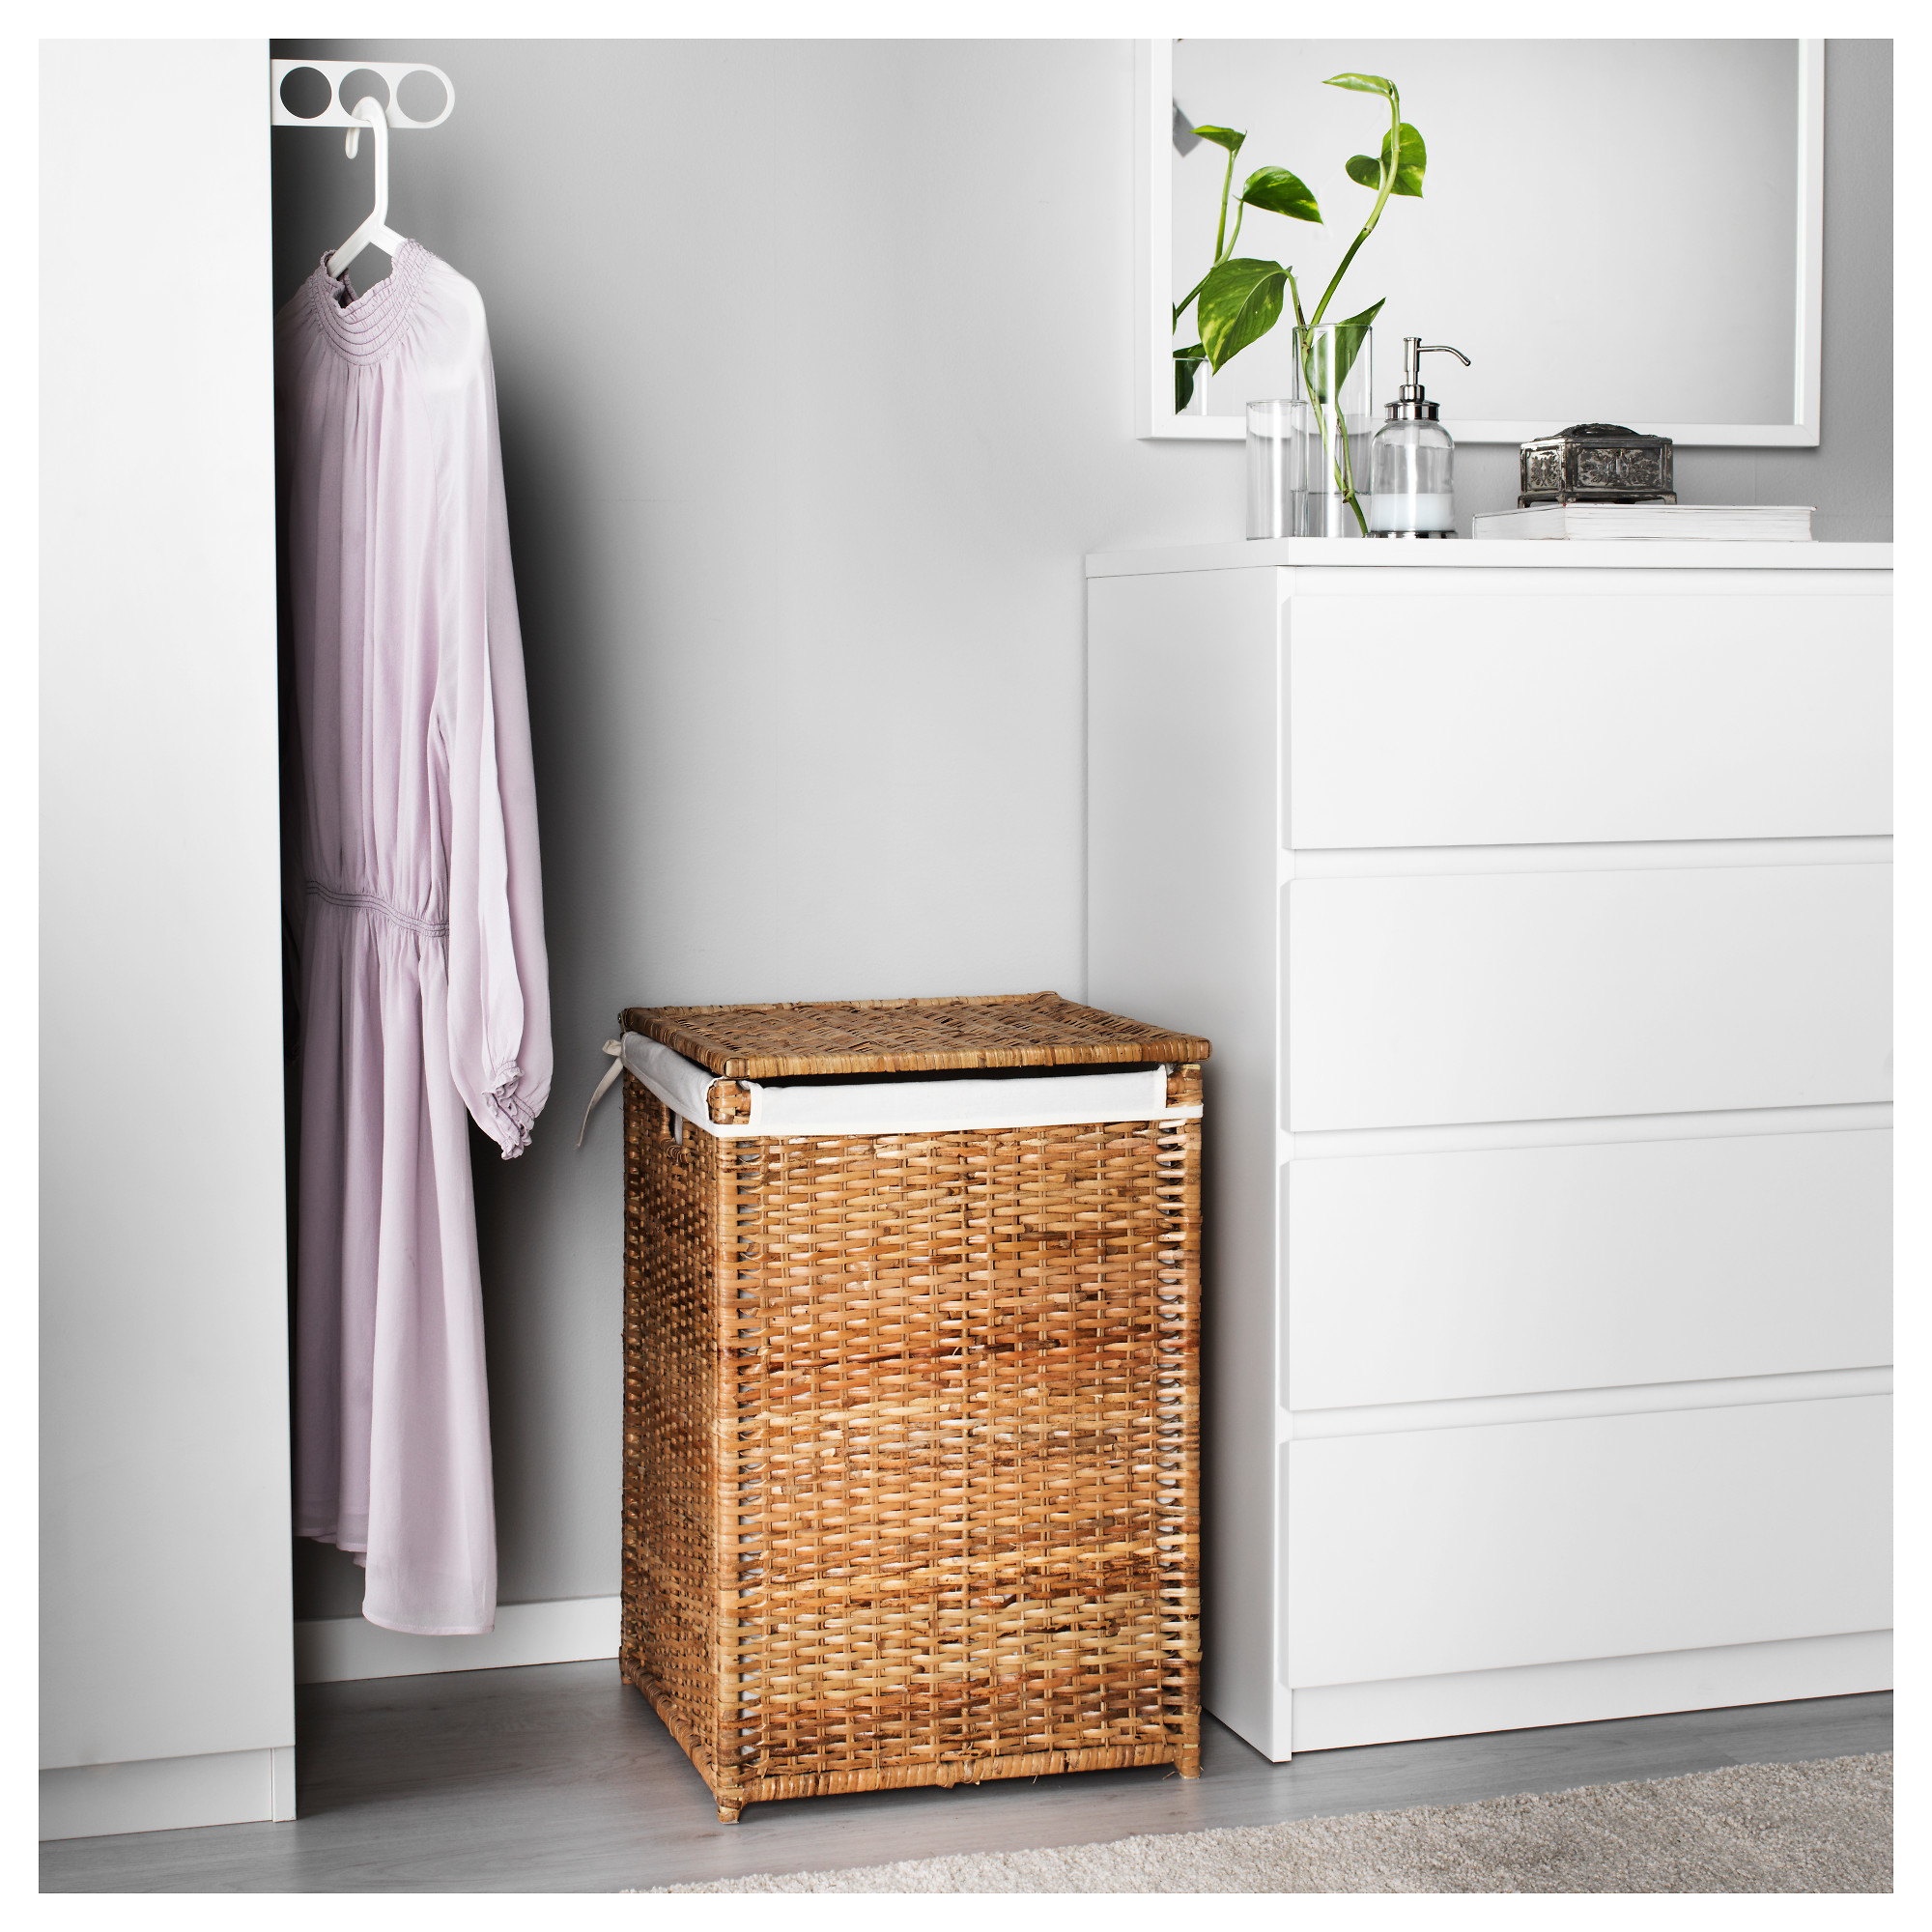 "BRAN""S Laundry basket with lining IKEA"